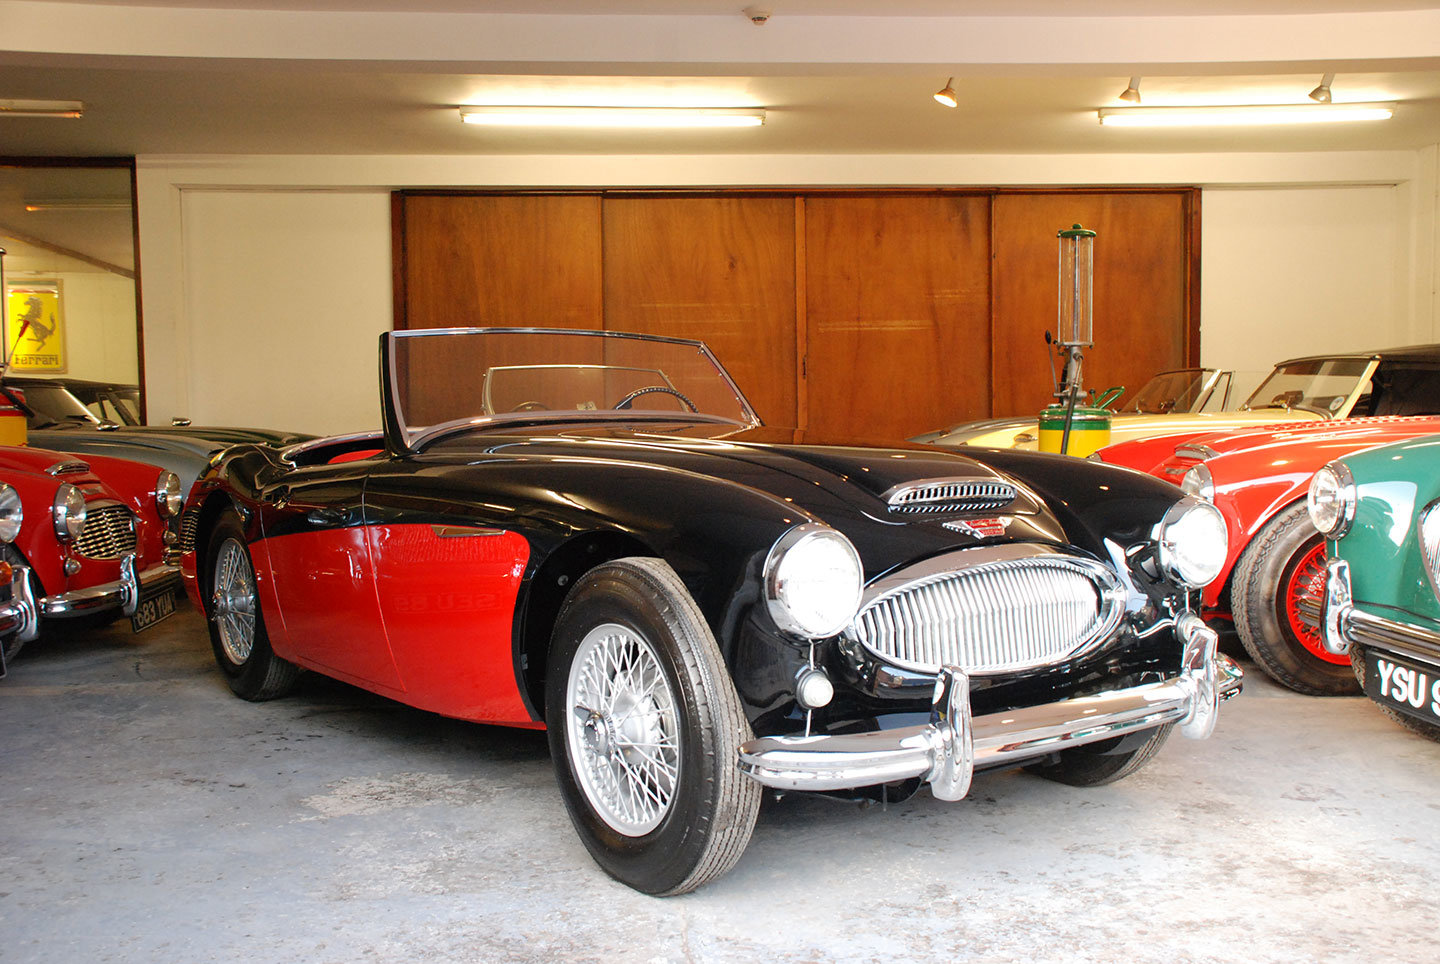 1961 Austin Healey 3000 Mk 2 BN7 2 seater tri carb For Sale (picture 1 of 10)